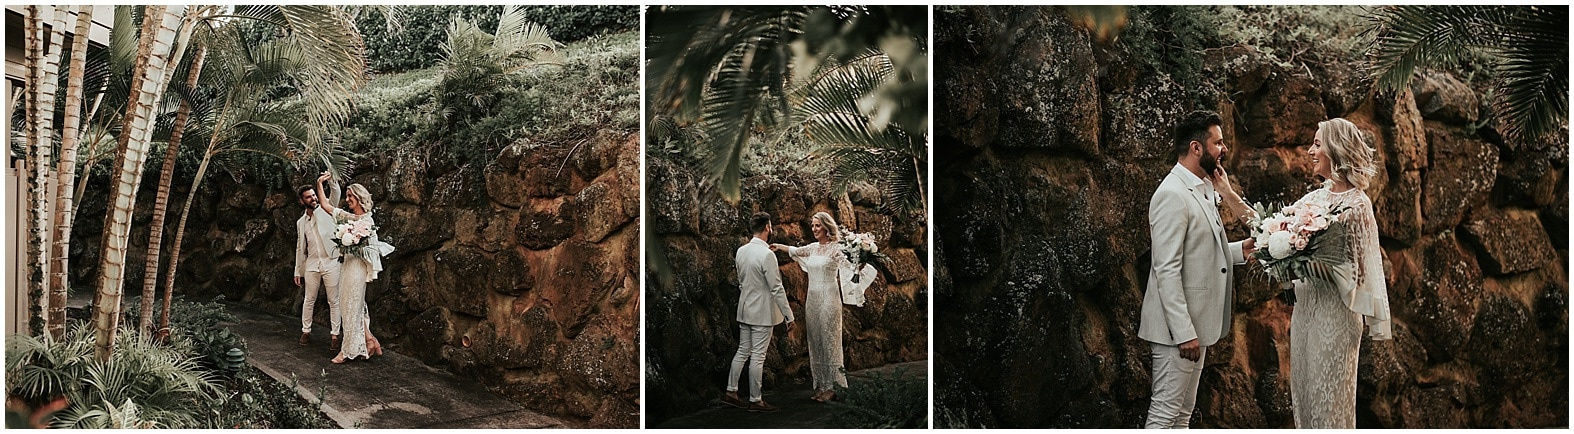 Maui wedding photographer19